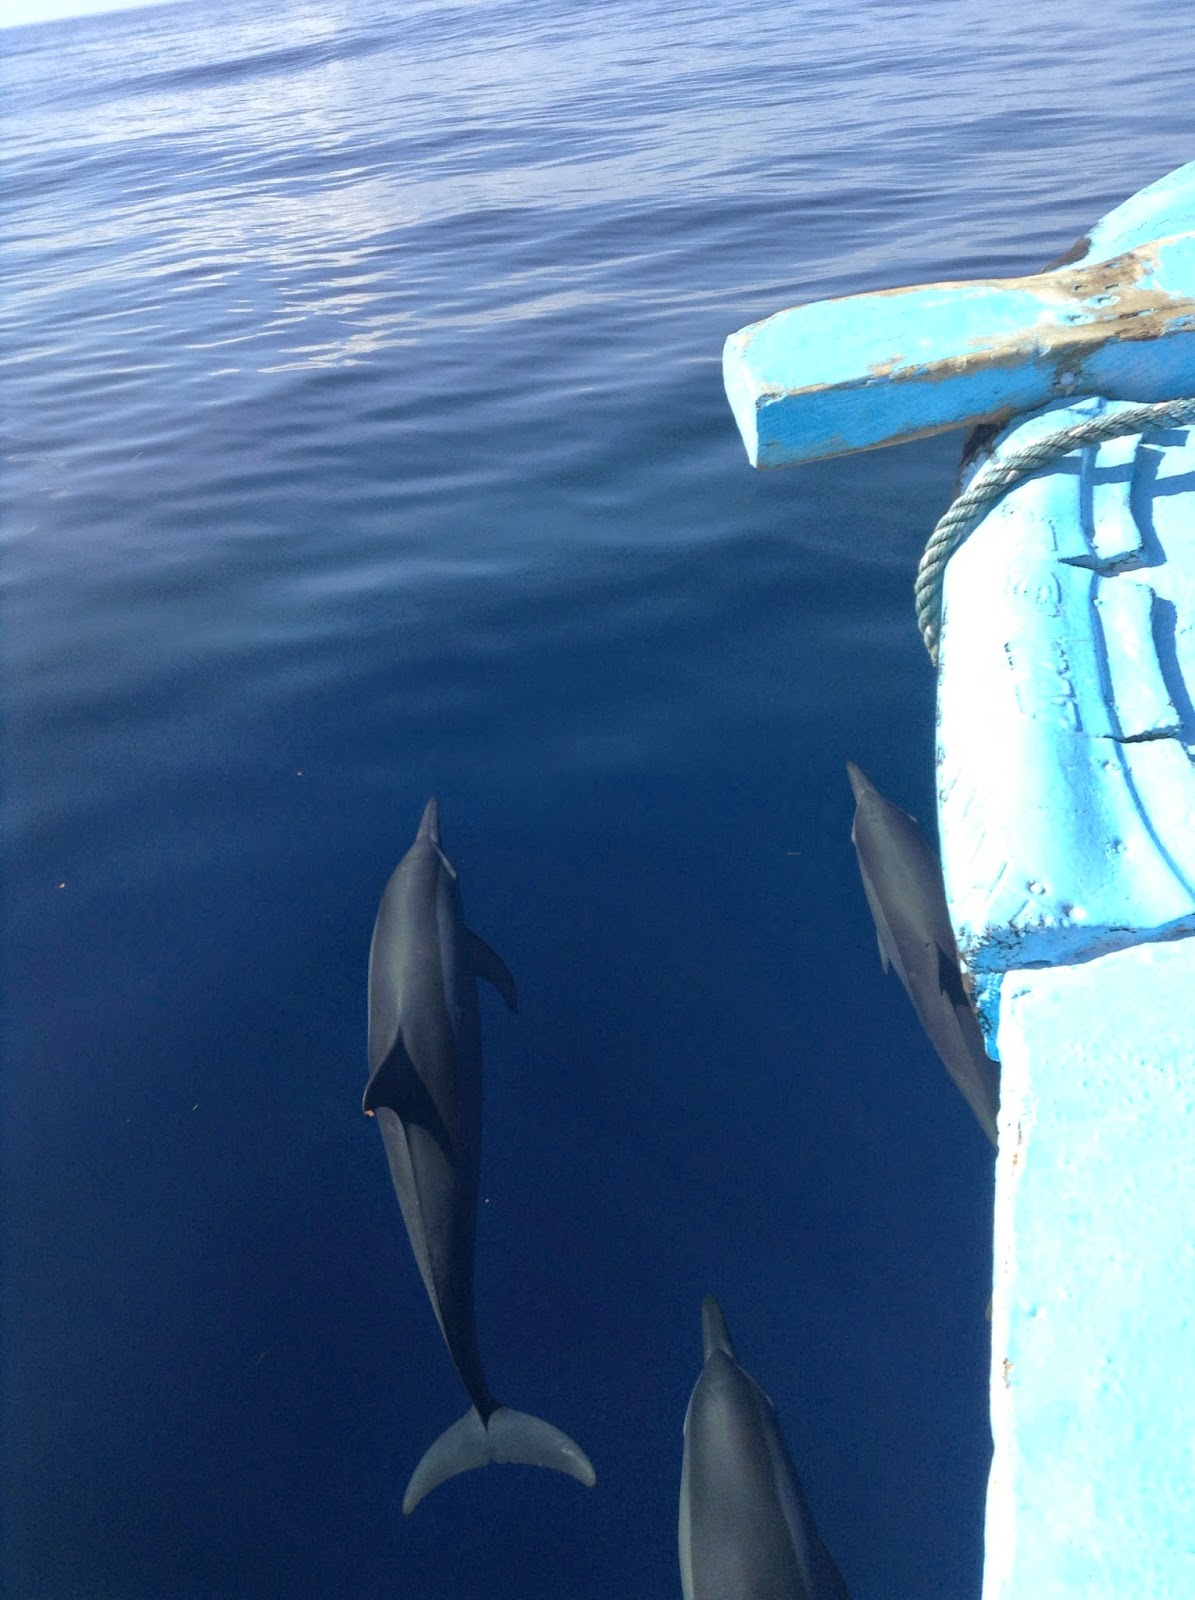 http://mytravel-asia.com/pois/159411-Dolphin-Watching-in-Pamilacan-Bohol